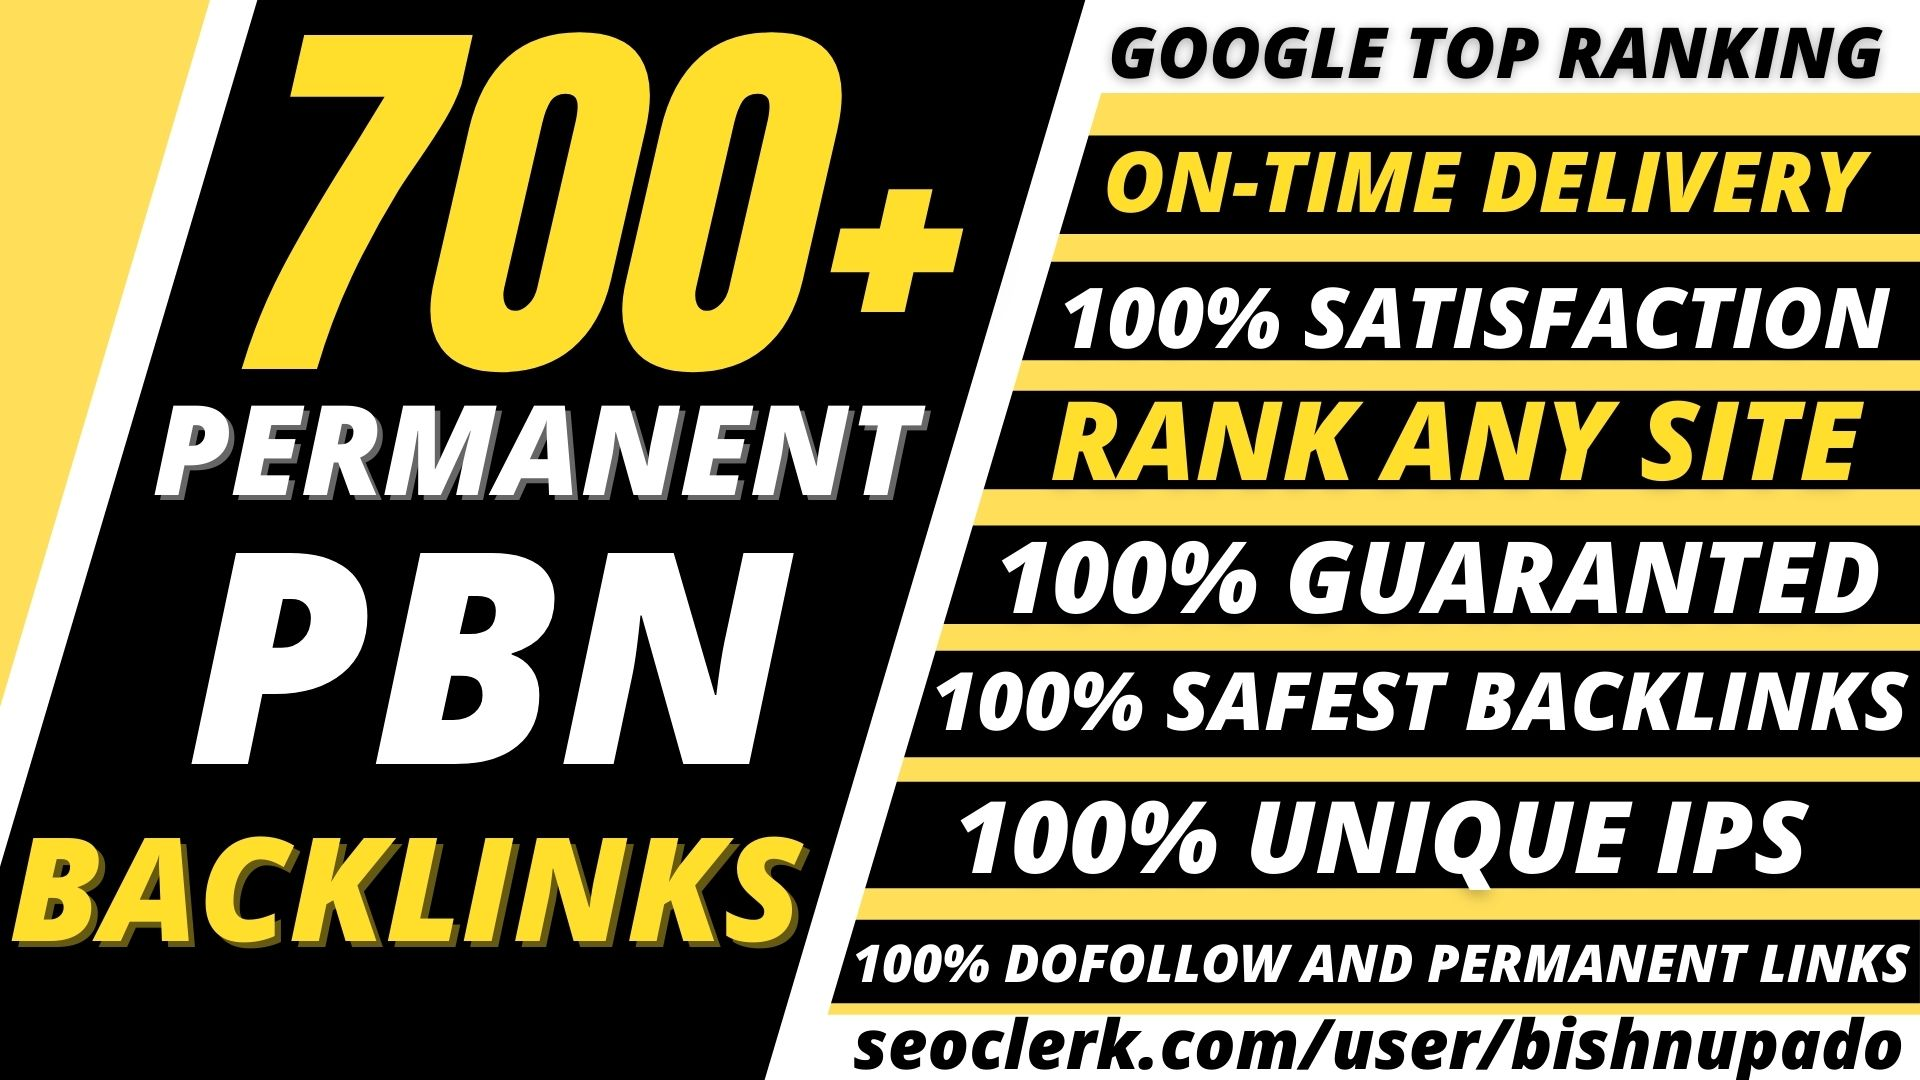 Build permanent 700+ Pbn Backlink DA40+PA40+PR6+homepage web 2.0 with dofollow unique site